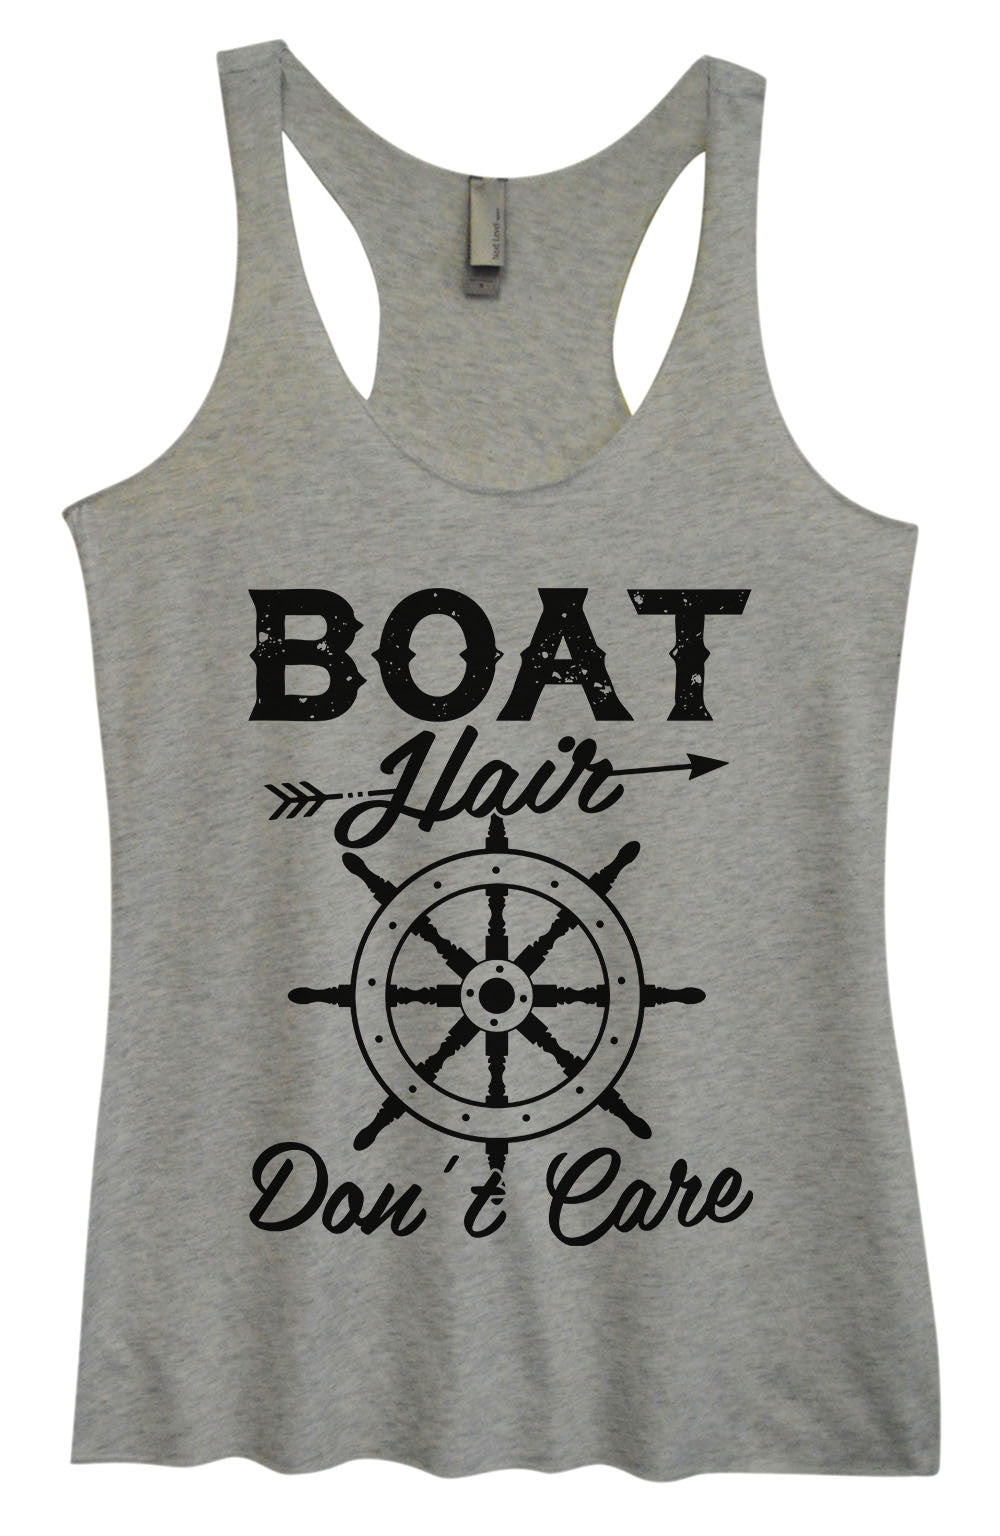 Womens Fashion Triblend Tank Top - Boat Hair Don't Care - Tri-1441 - Funny Shirts Tank Tops Burnouts and Triblends  - 2